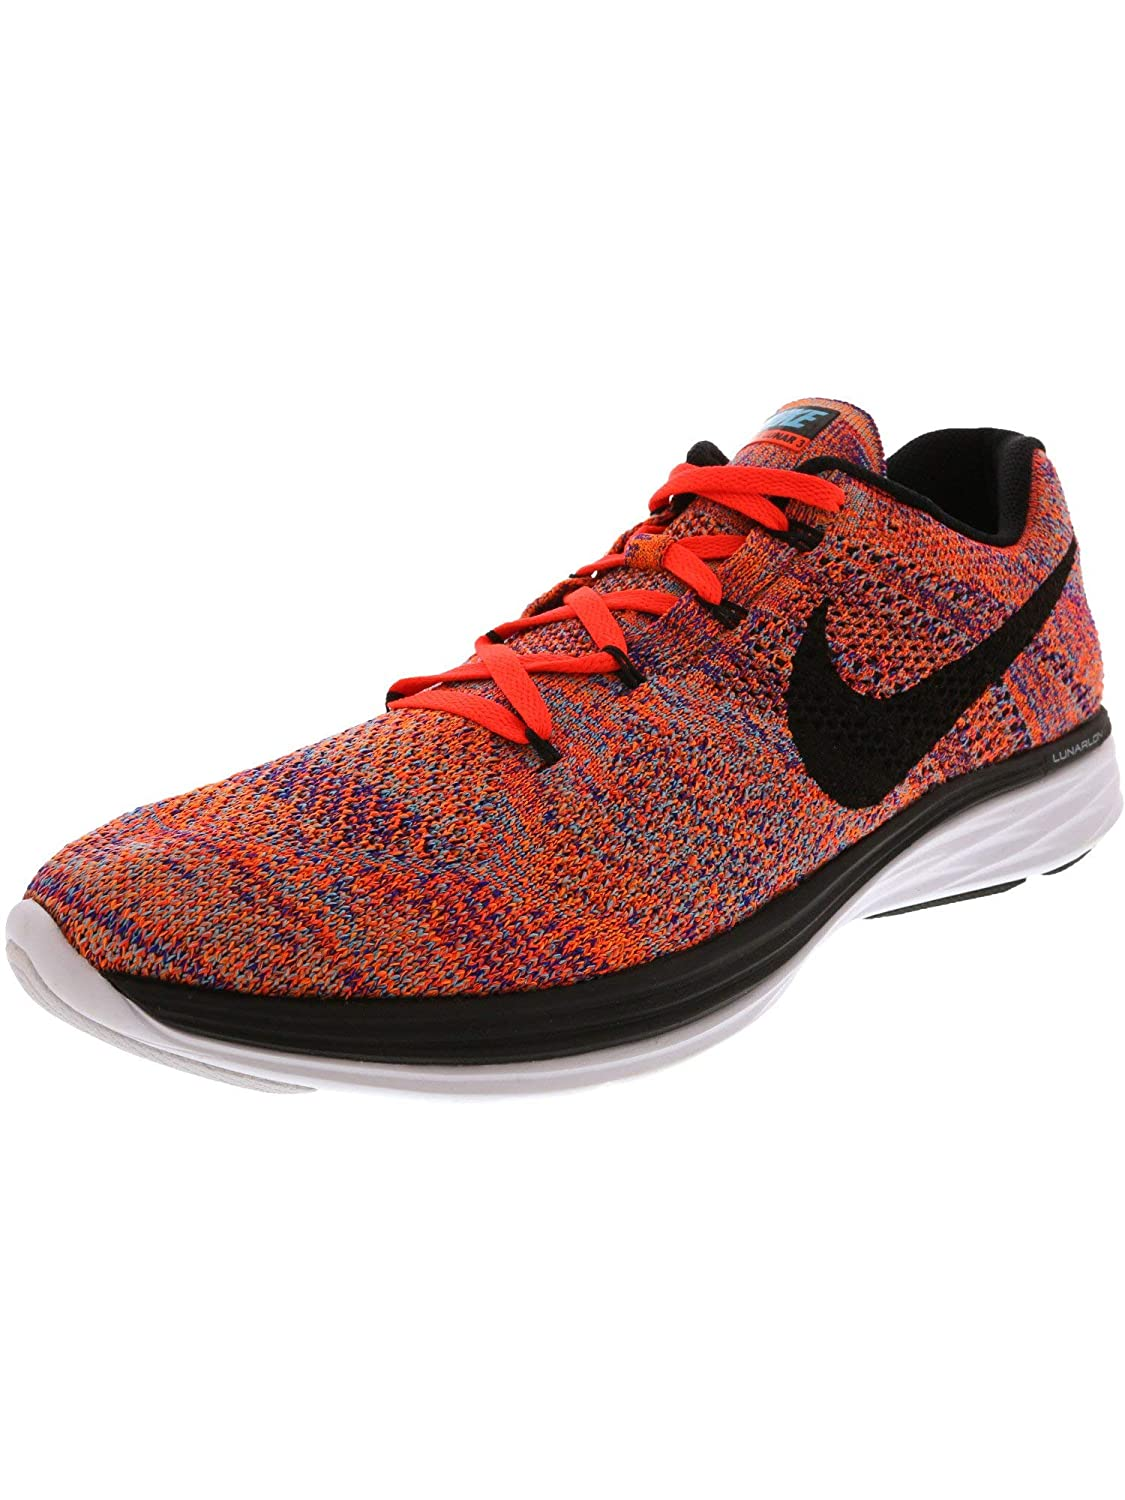 huge selection of f032e 068e5 NIKE Mens Flyknit Lunar3 Running Shoes